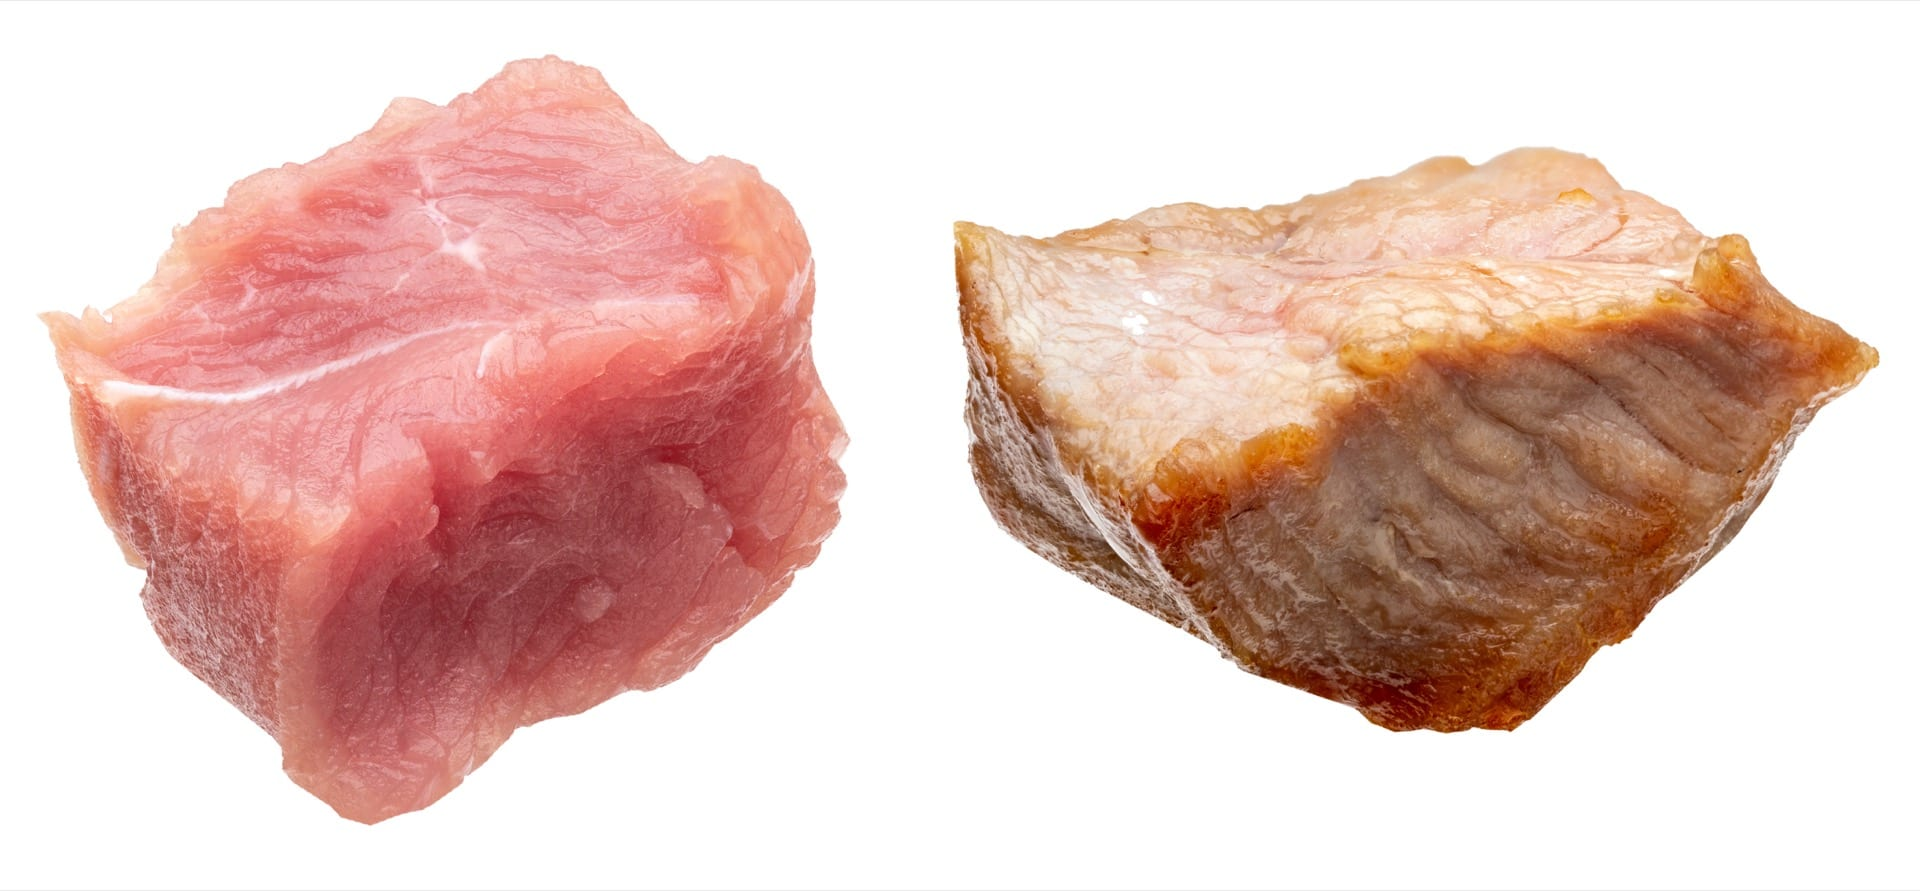 WA Foods diced chicken, raw and cooked